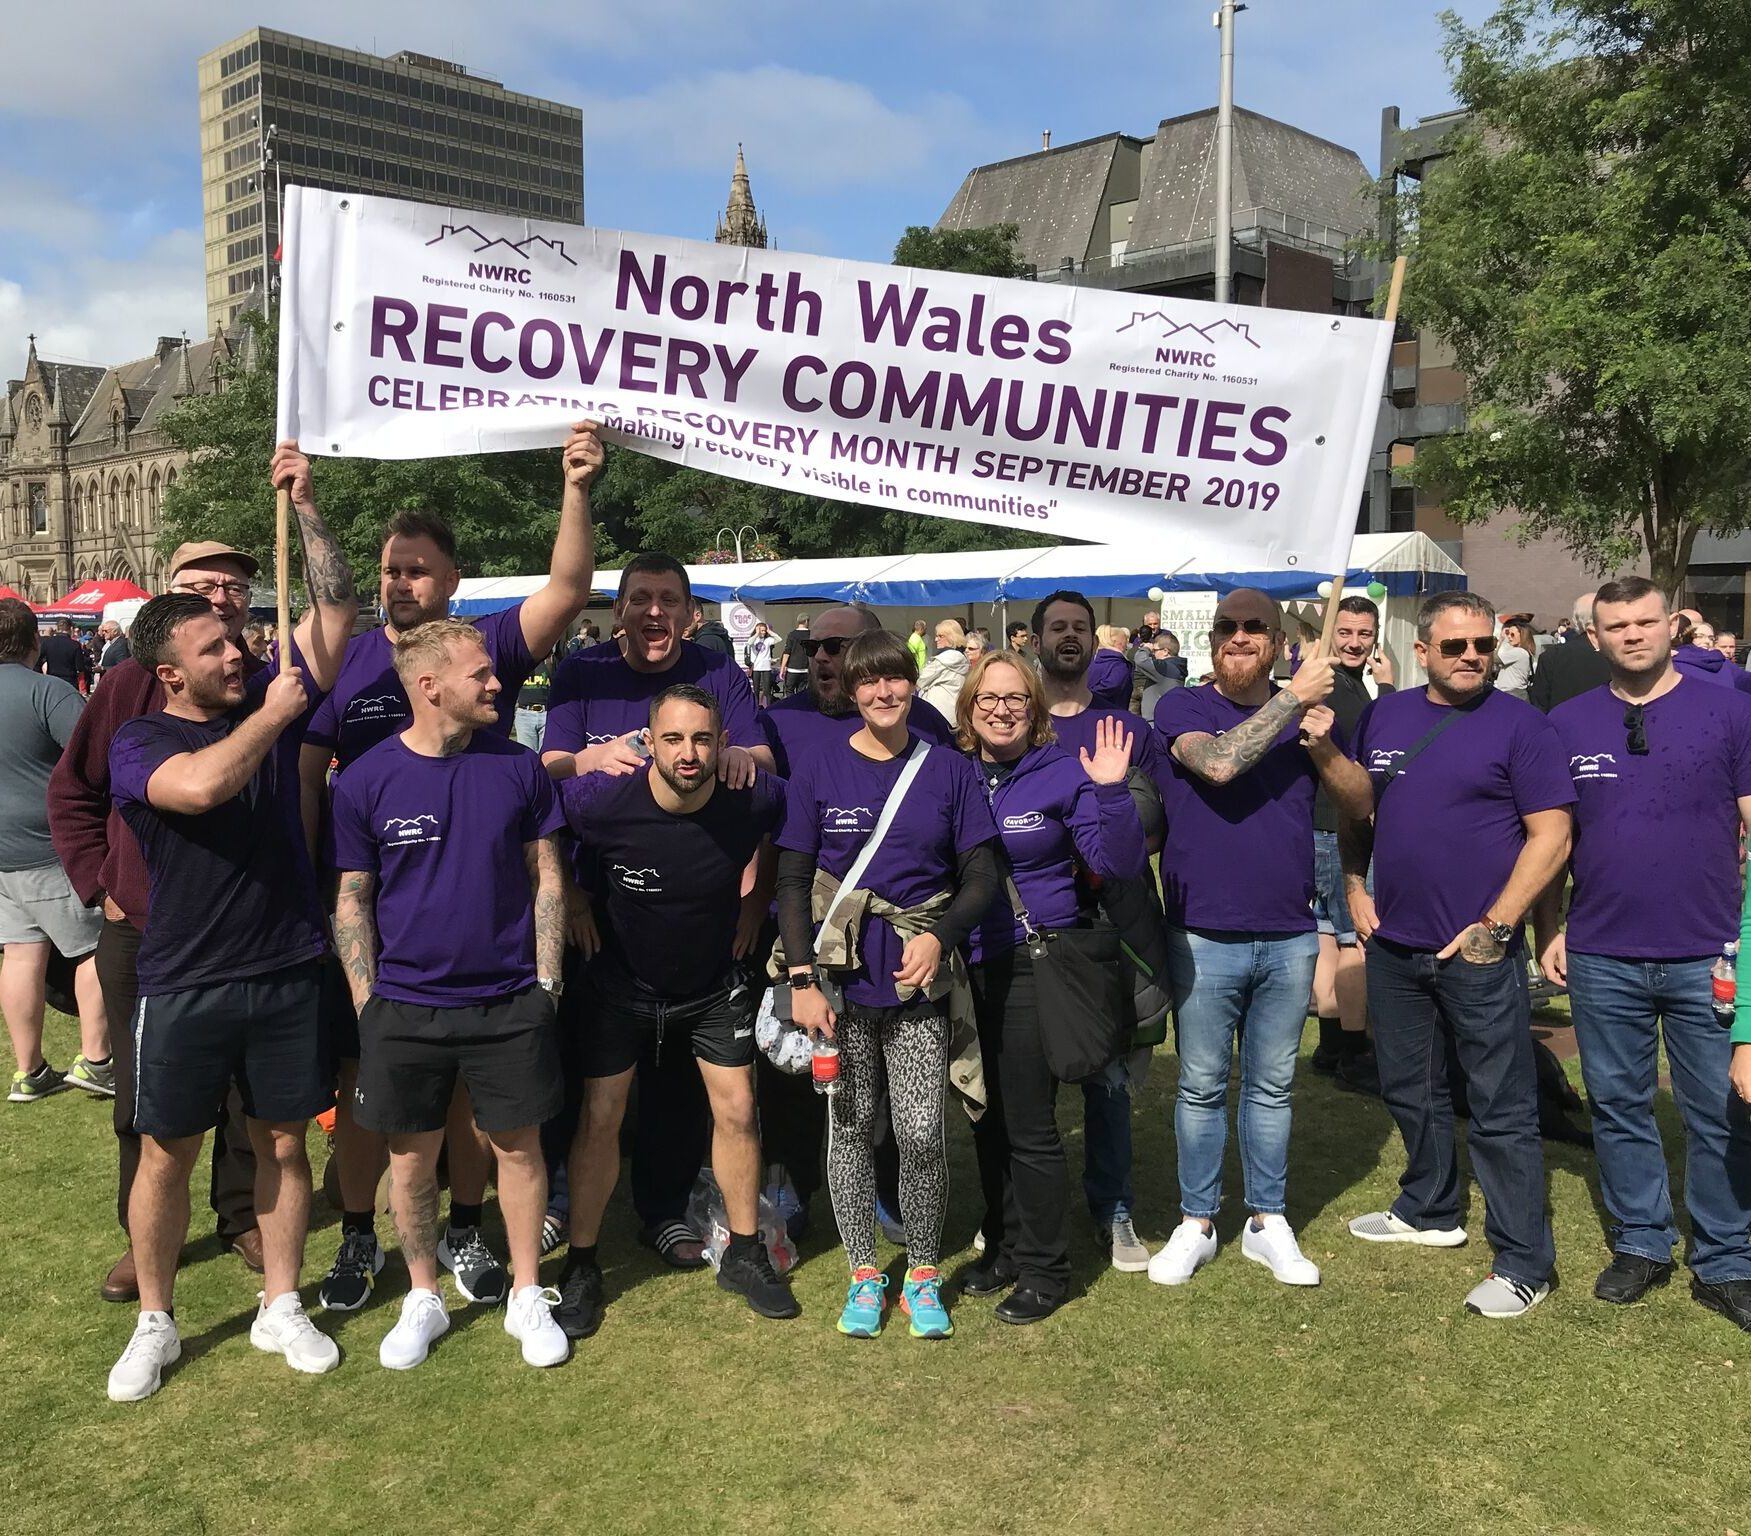 NRWC group in Middlesbrough